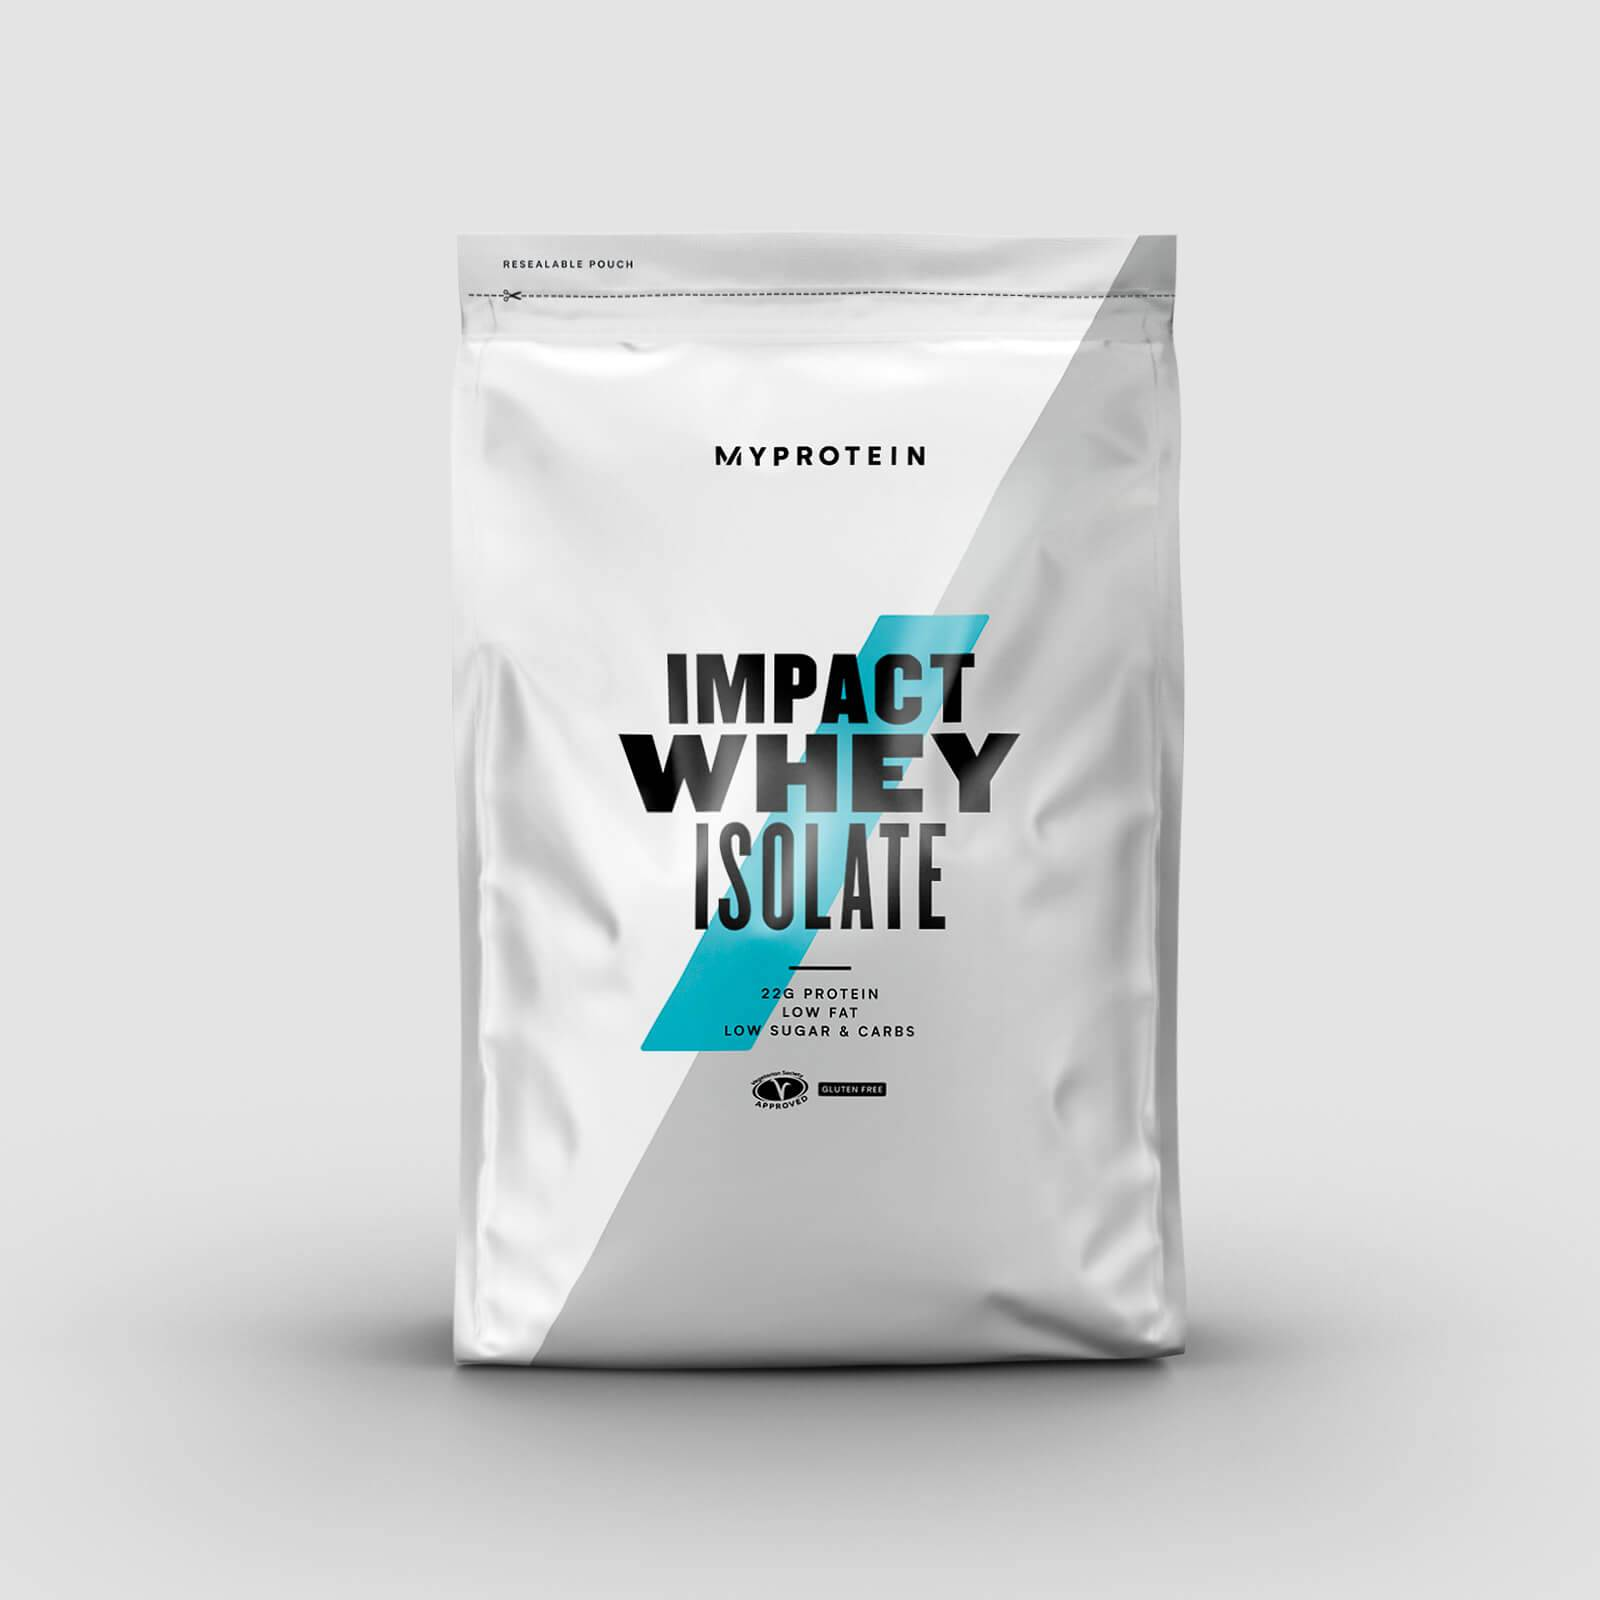 Myprotein Impact Whey Isolate - 1kg - Chocolat-Beurre de Cacahuète